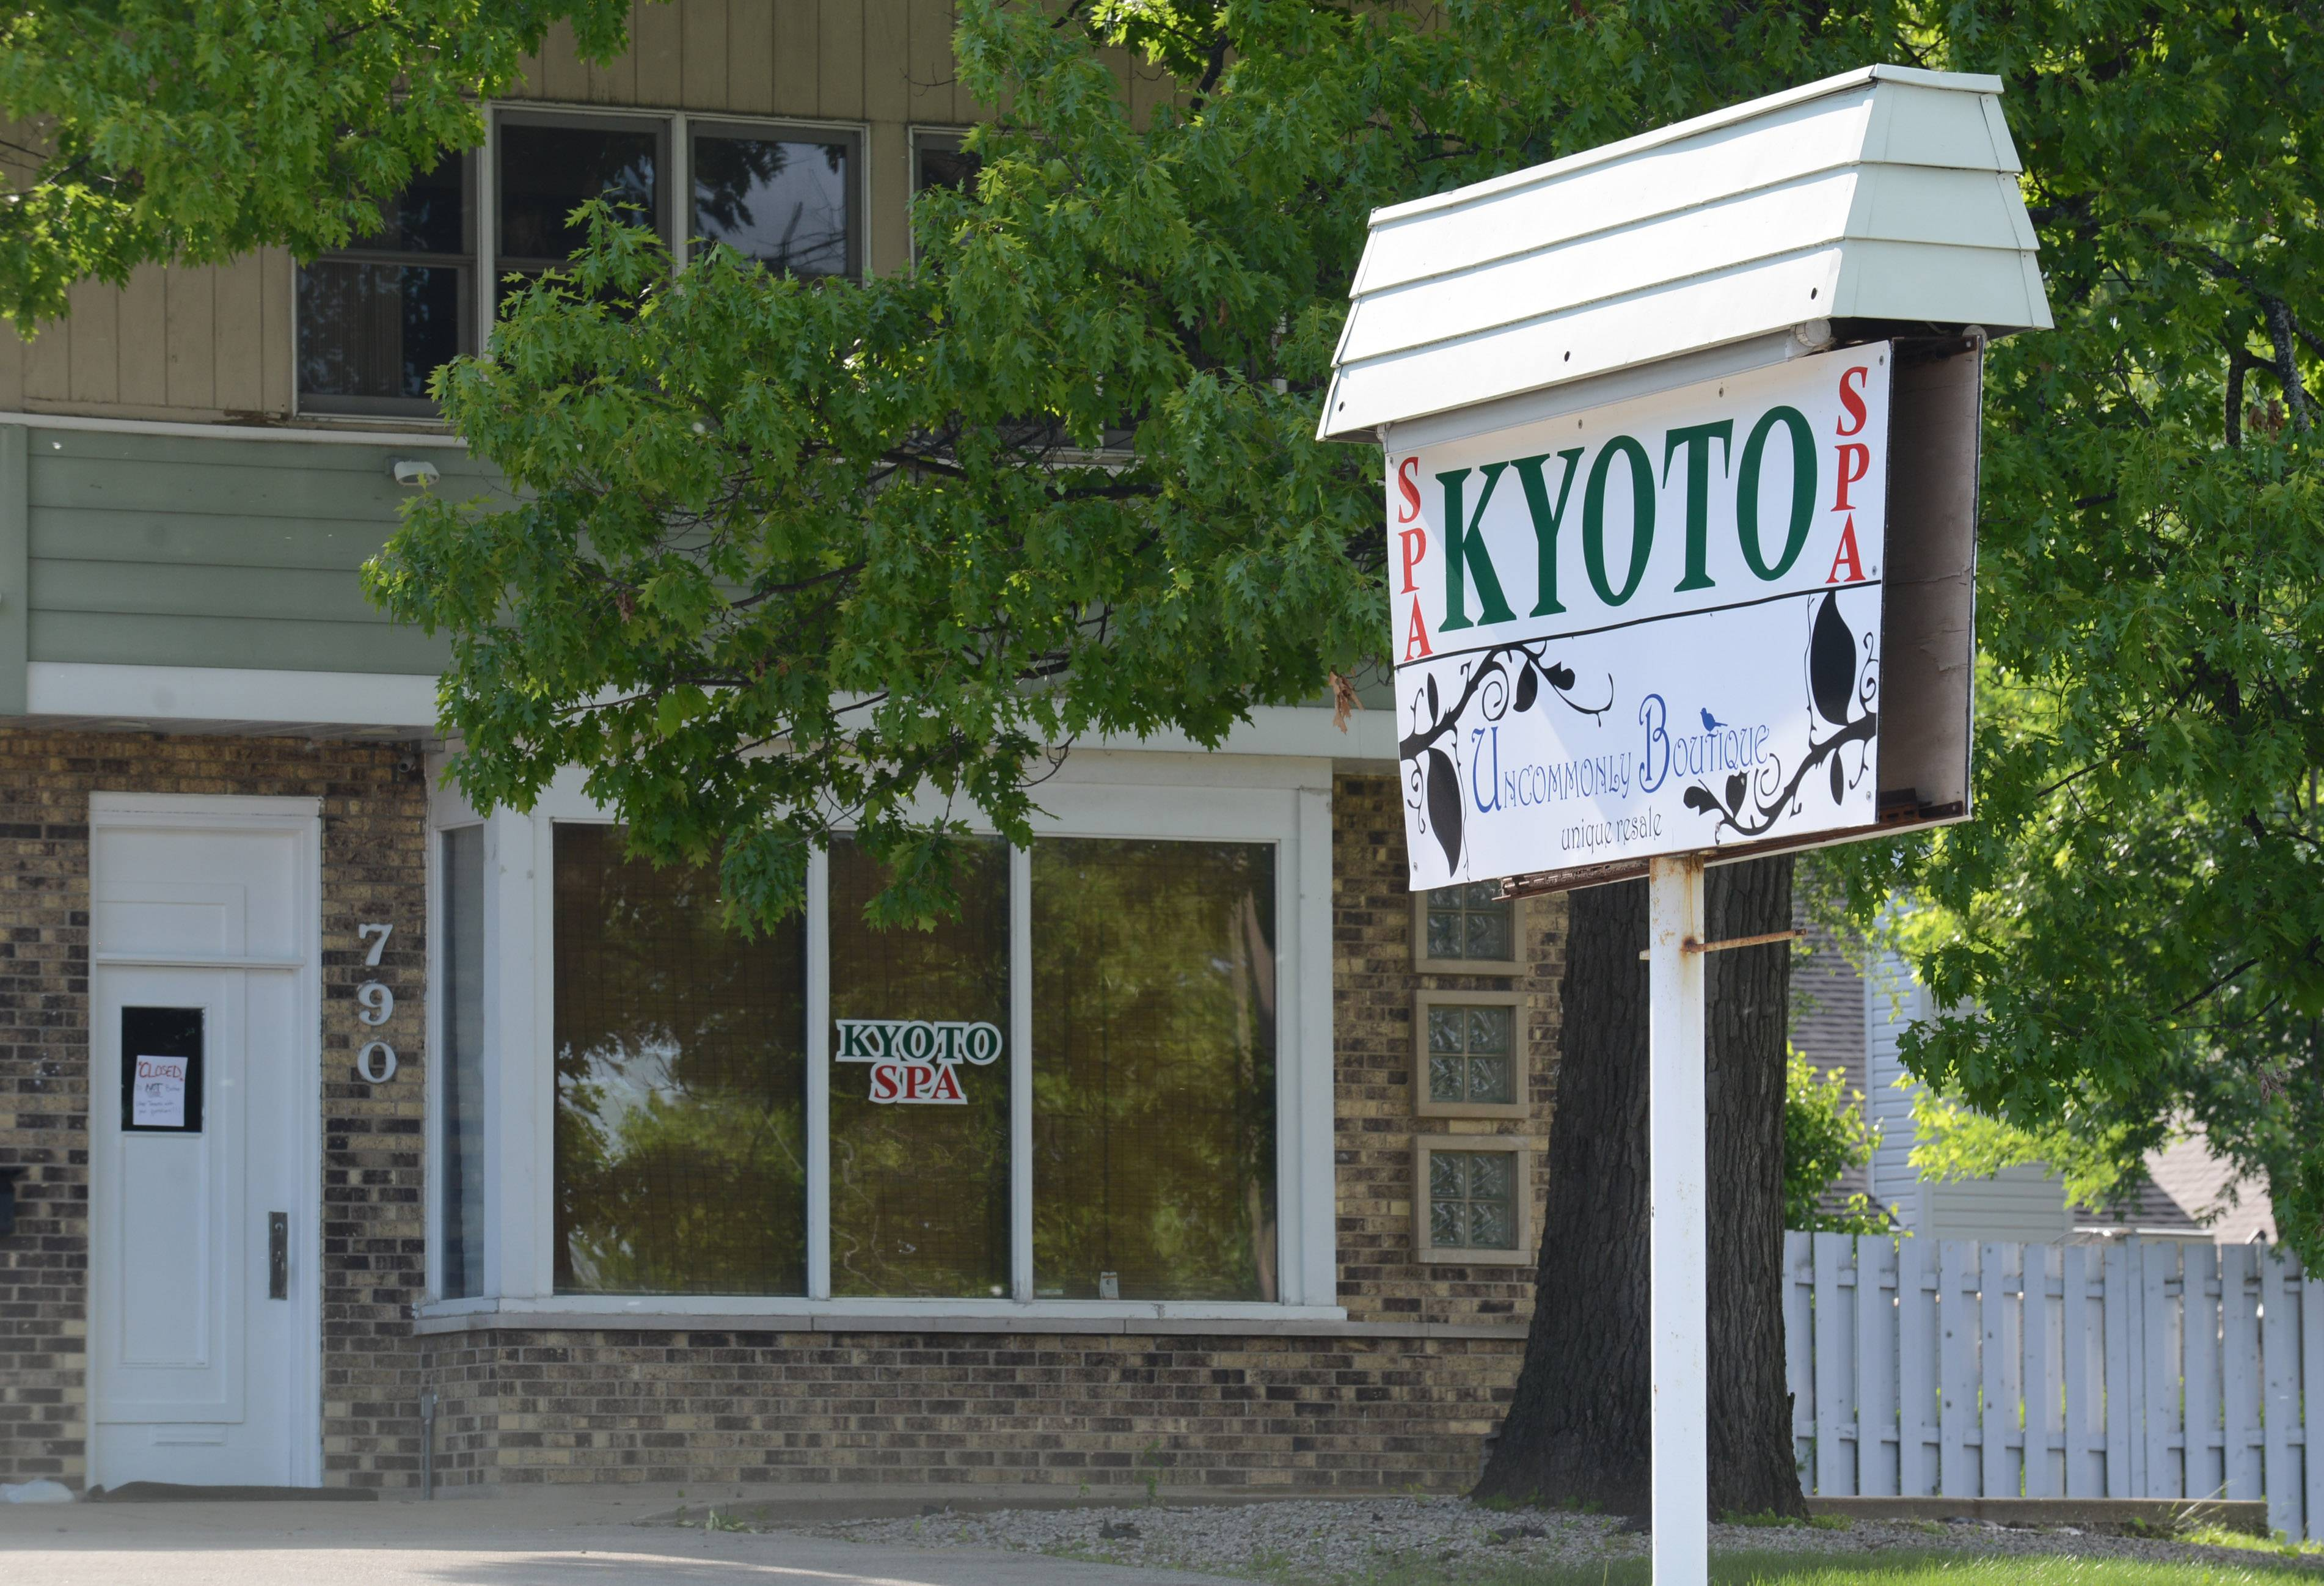 Grayslake last year revoked the business license of Kyoto Spa and Massage on Route 83, where police say two women were charged with prostitution. The village now has greater control over new massage businesses that want to open there.